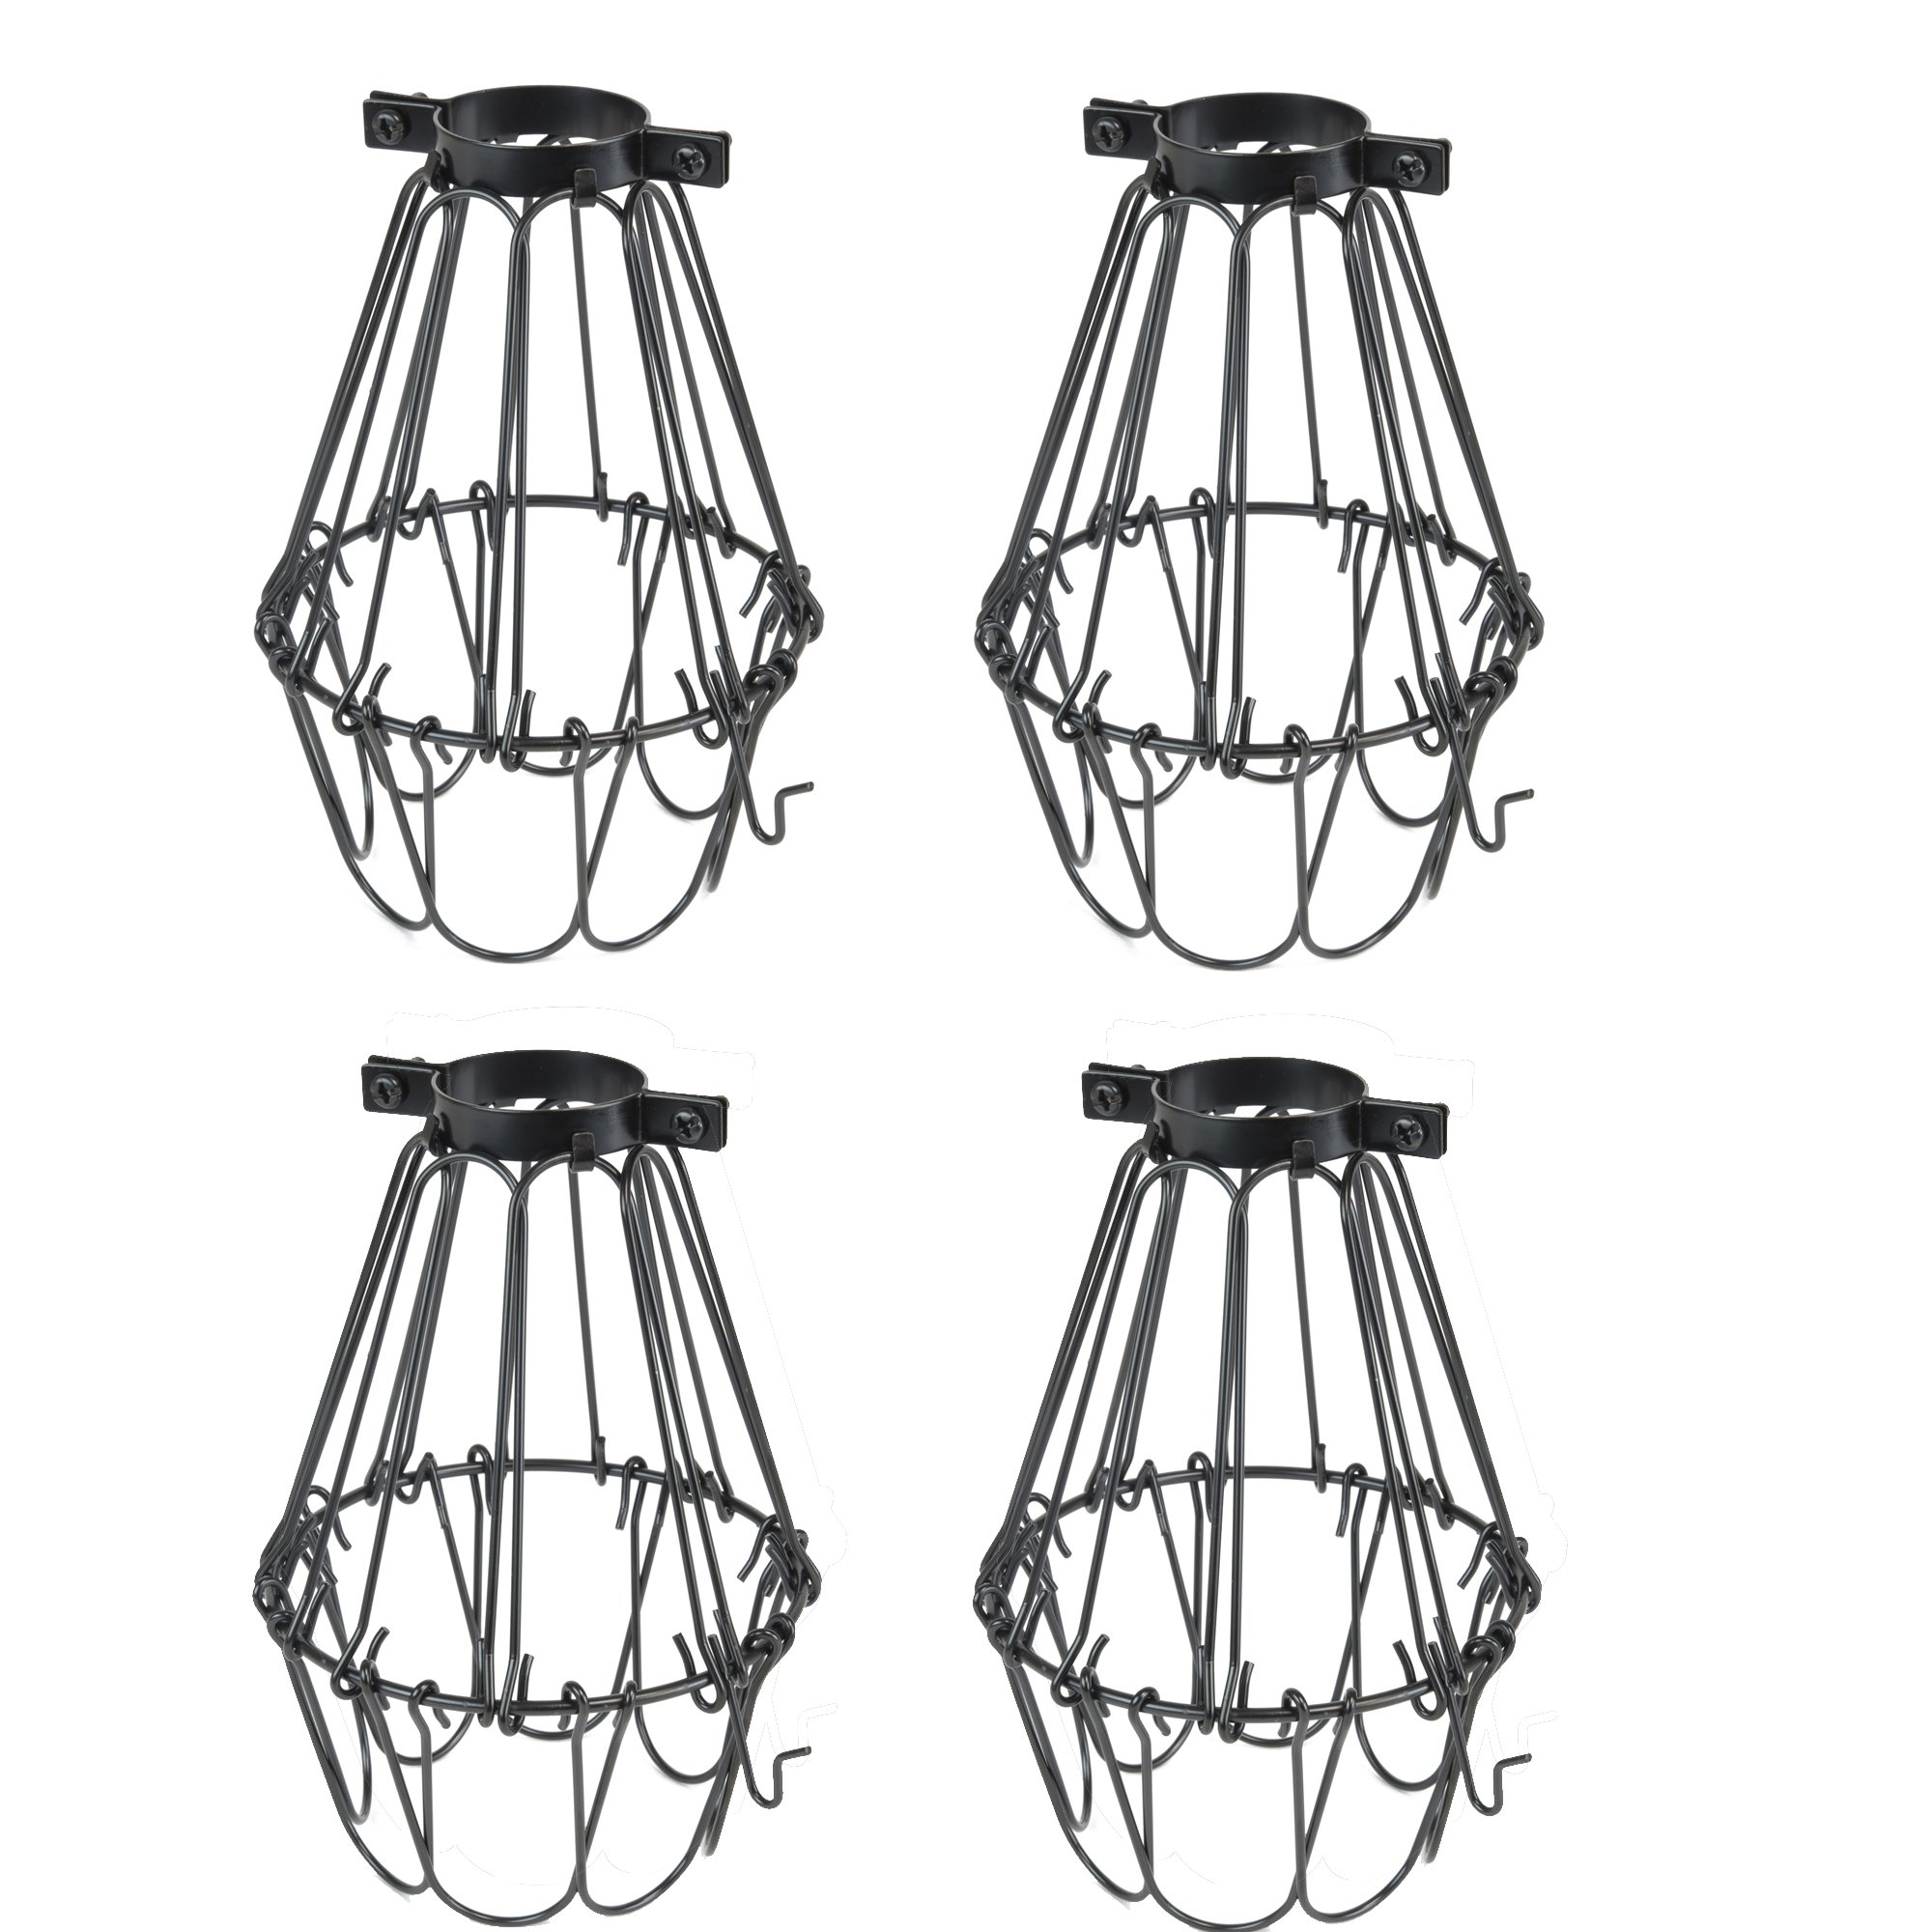 Rustic State Set of 4 Industrial Vintage Style | Hanging Pendant Metal Wire Cage | Adjustable Light Fixture Lamp Guard (Black) by Rustic State